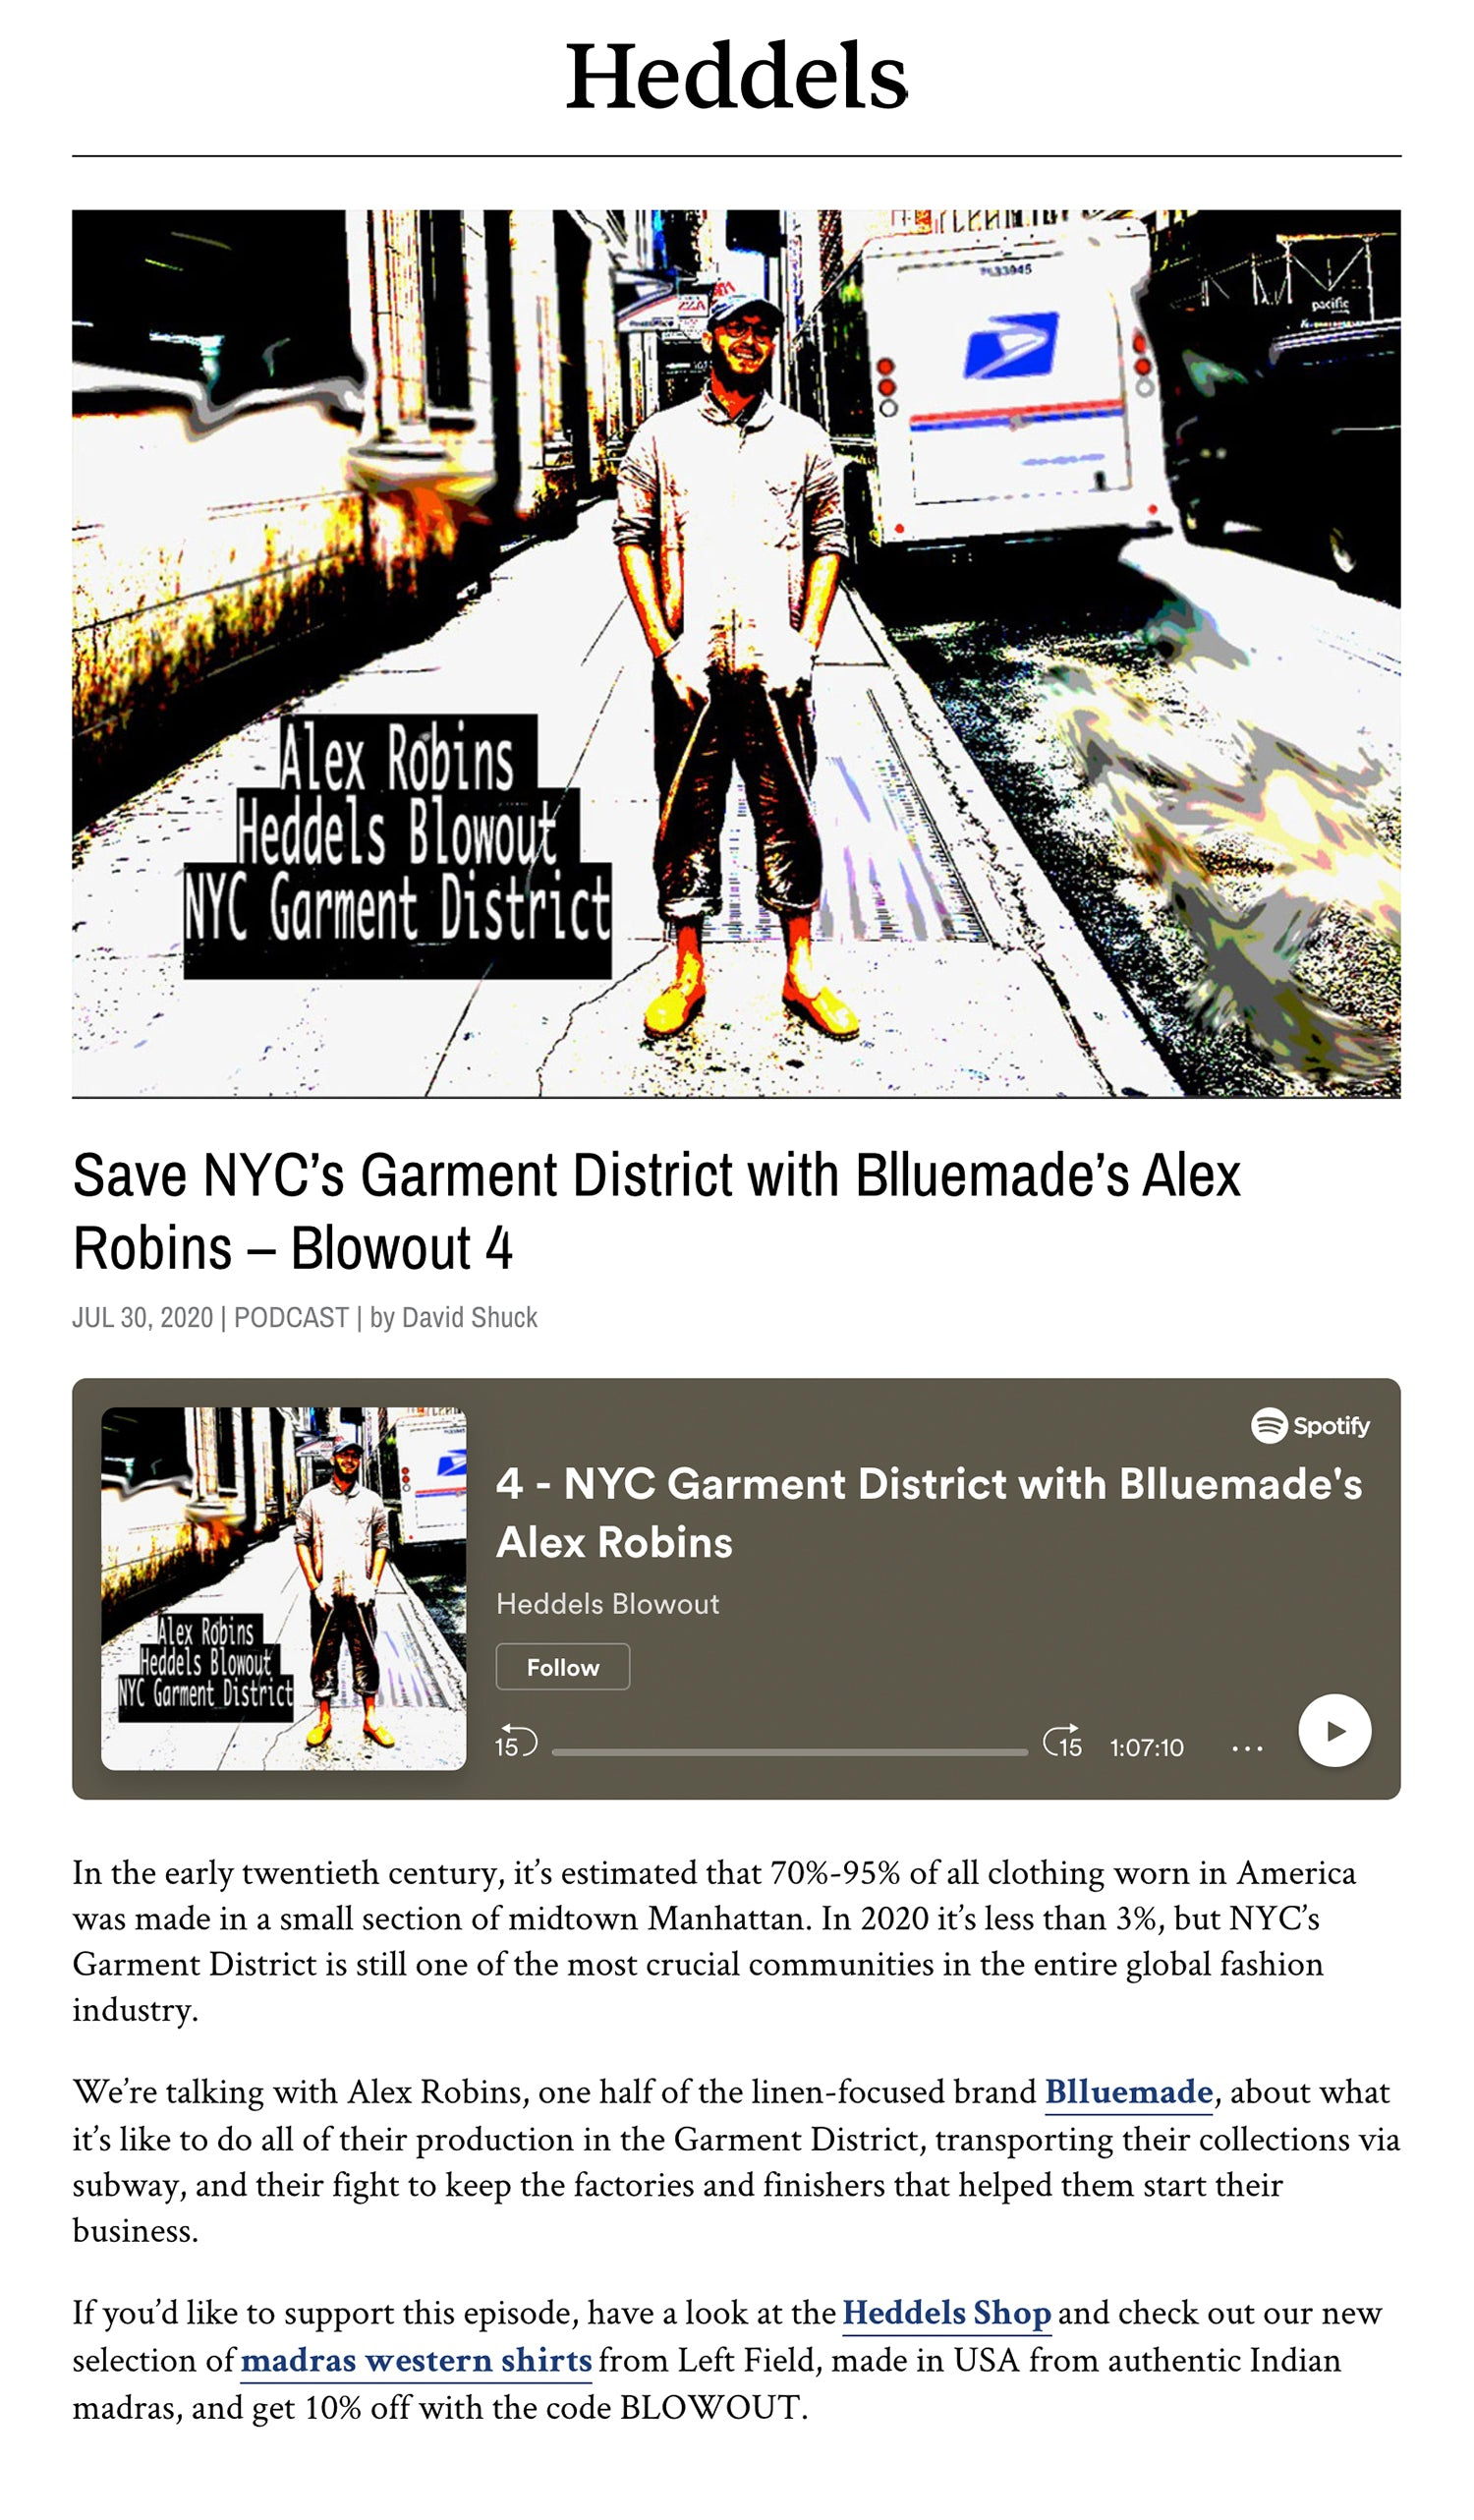 Blluemade Press Heddels Save NYC's Garment District with Blluemade's Alex Robins